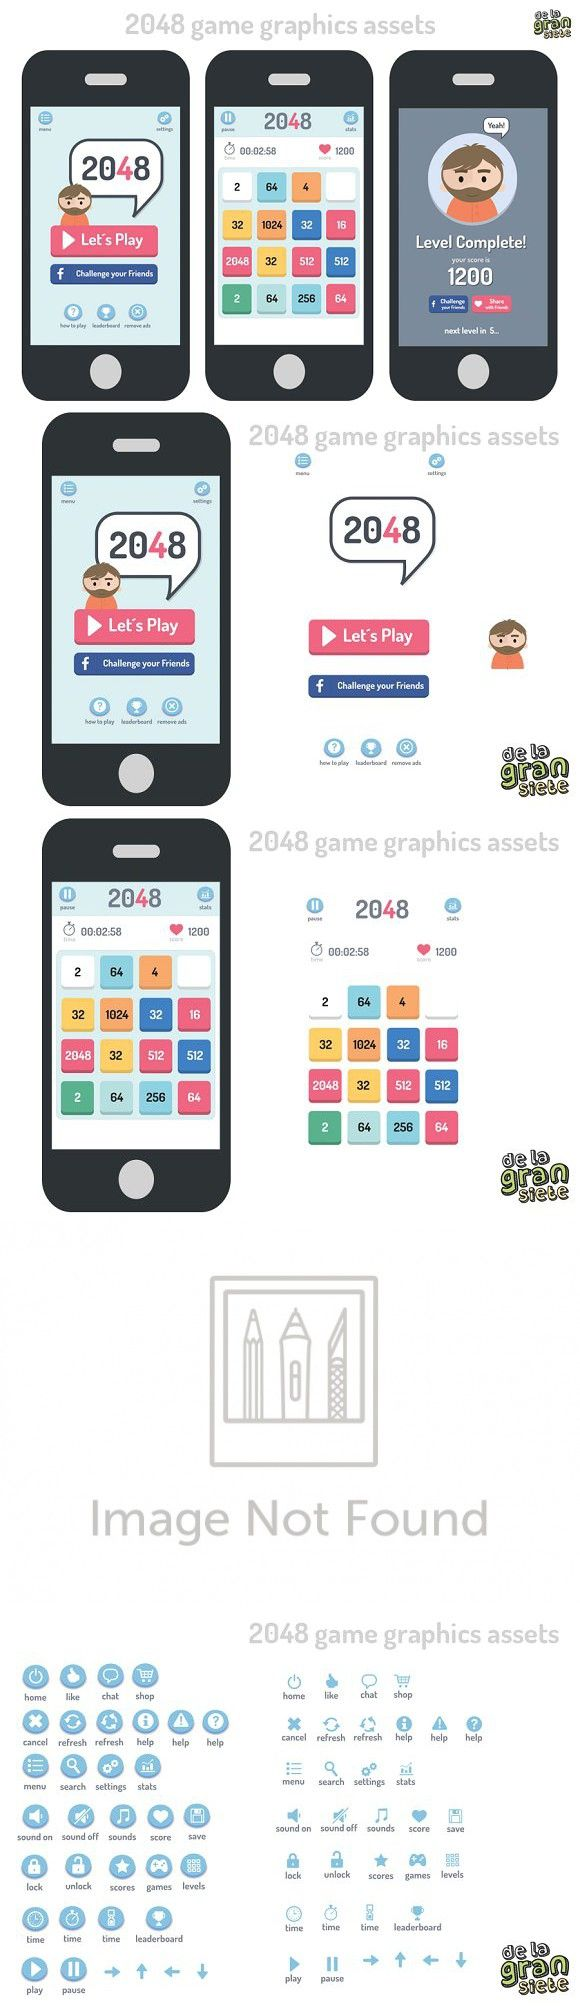 2048 Game Style Gui Assets. UI Elements